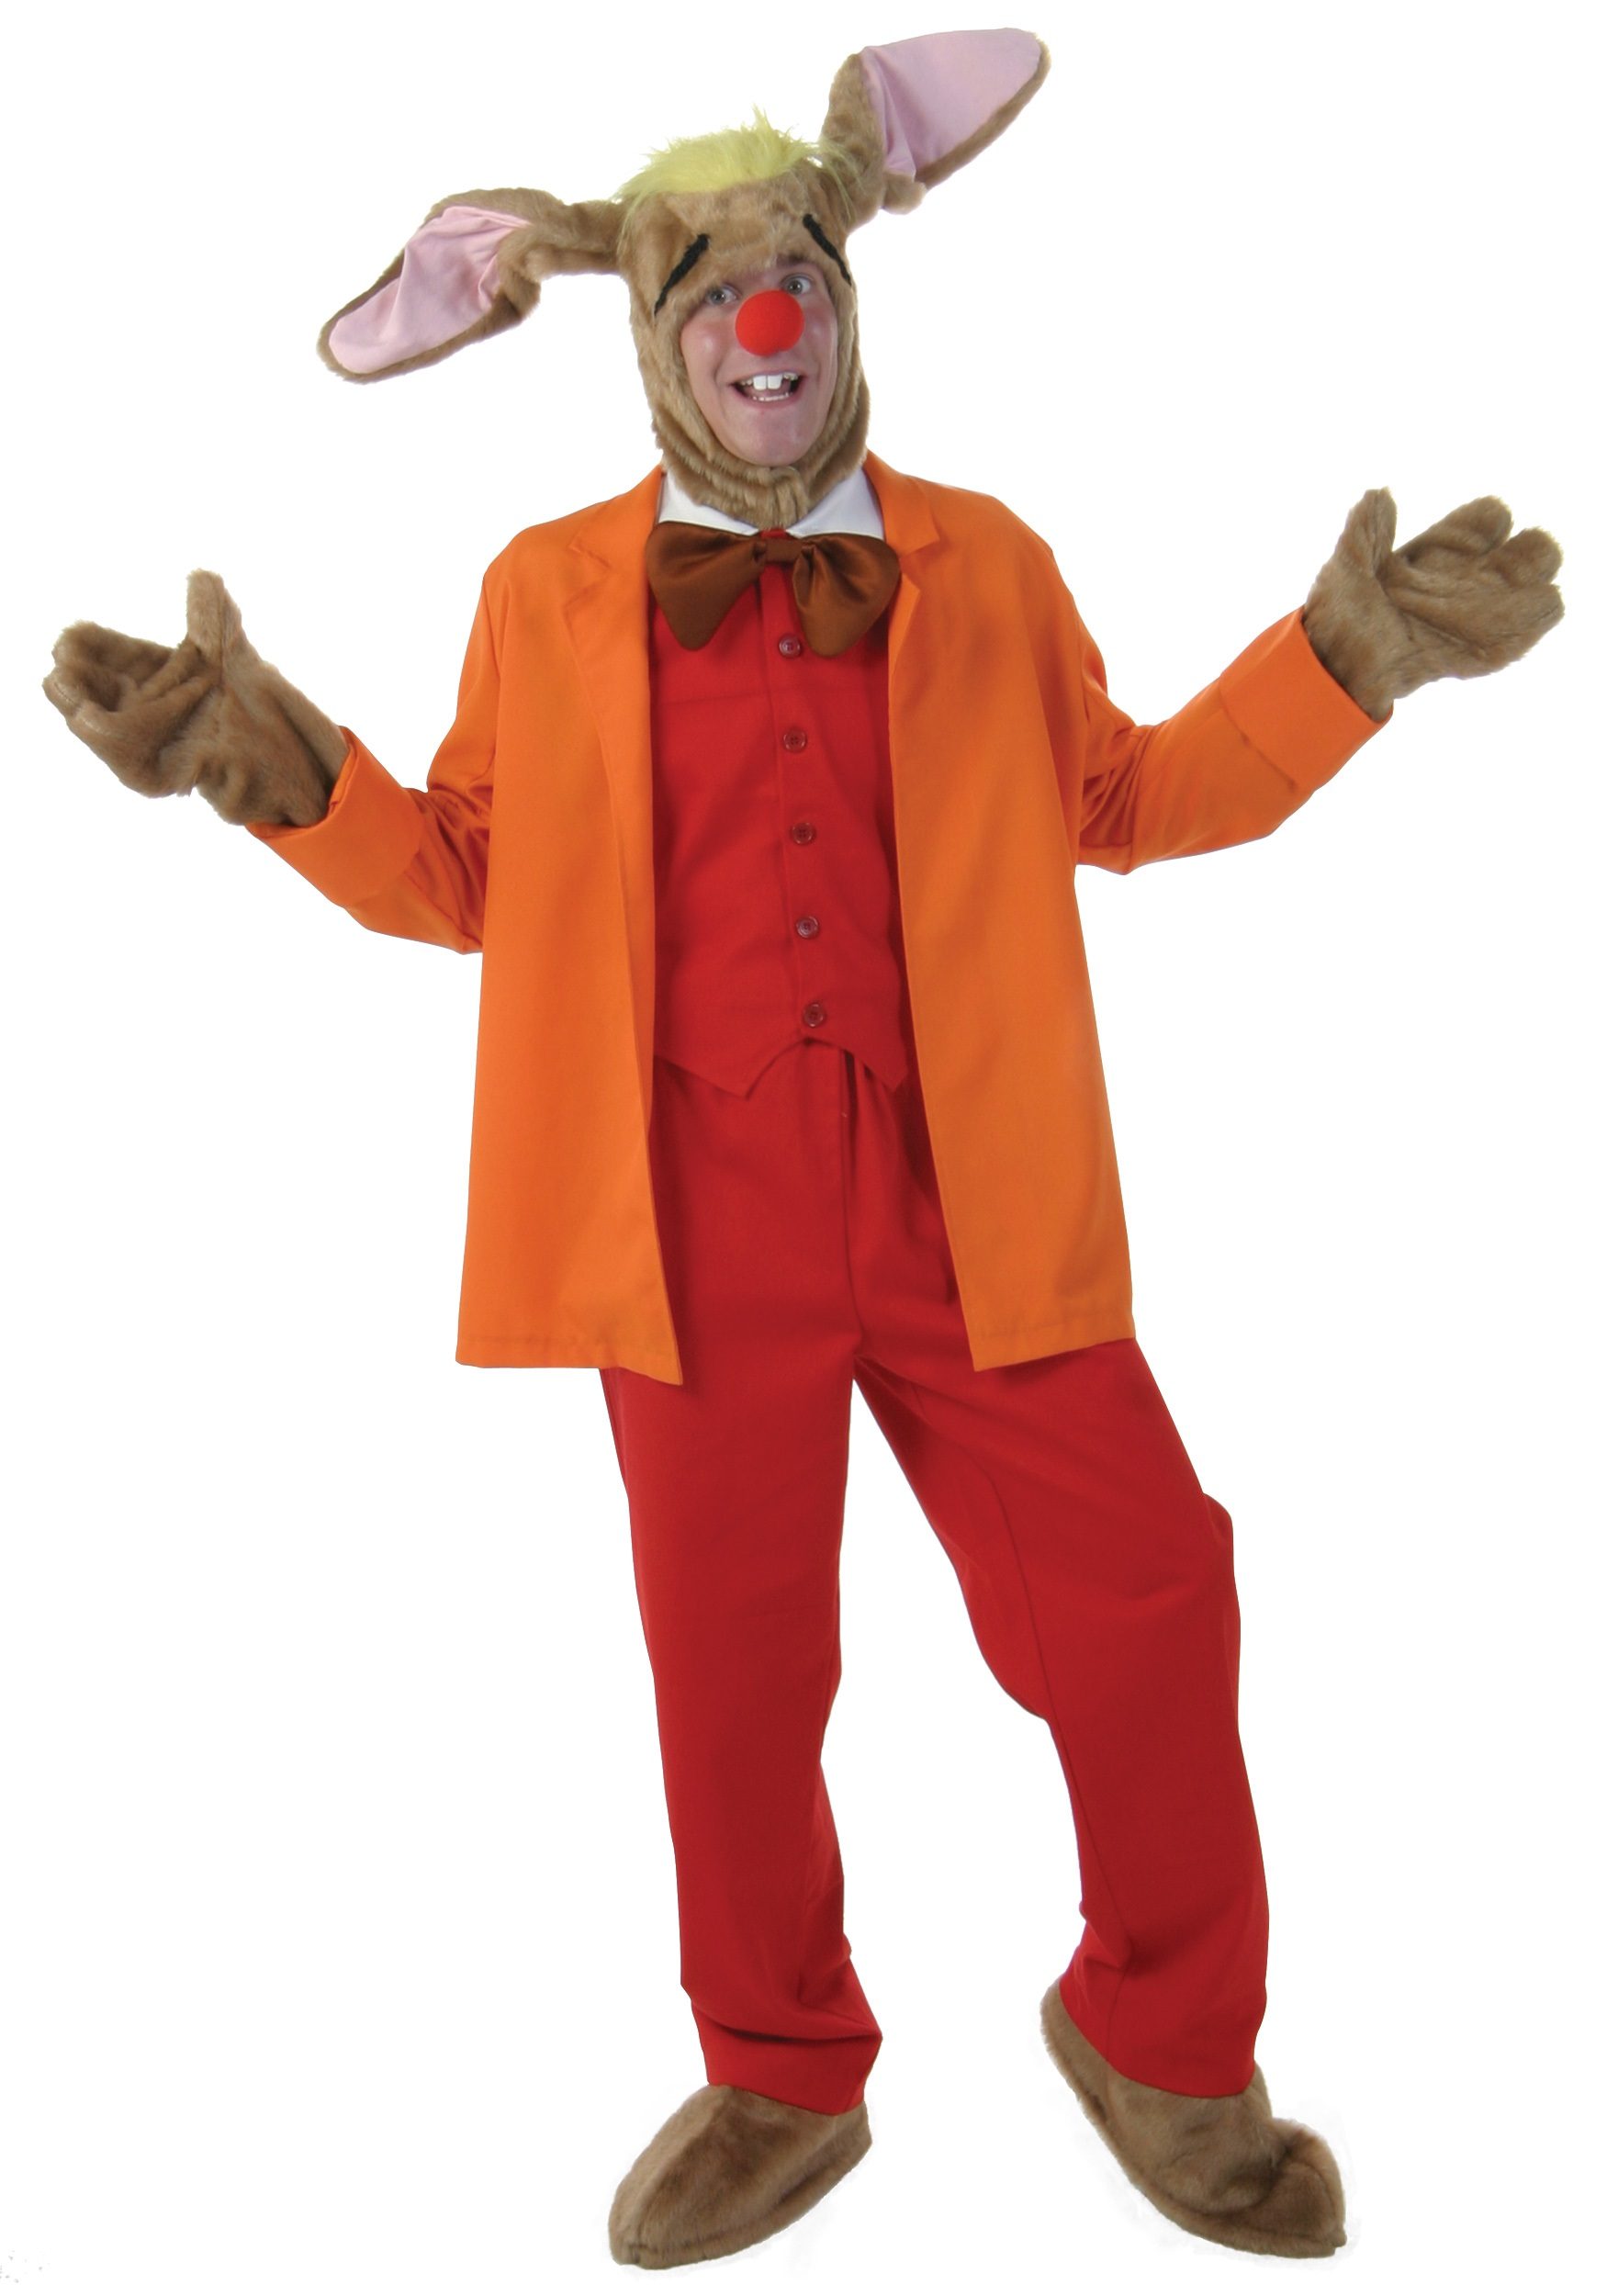 Plus Size Deluxe March Hare Costume Halloween Costume Ideas 2019